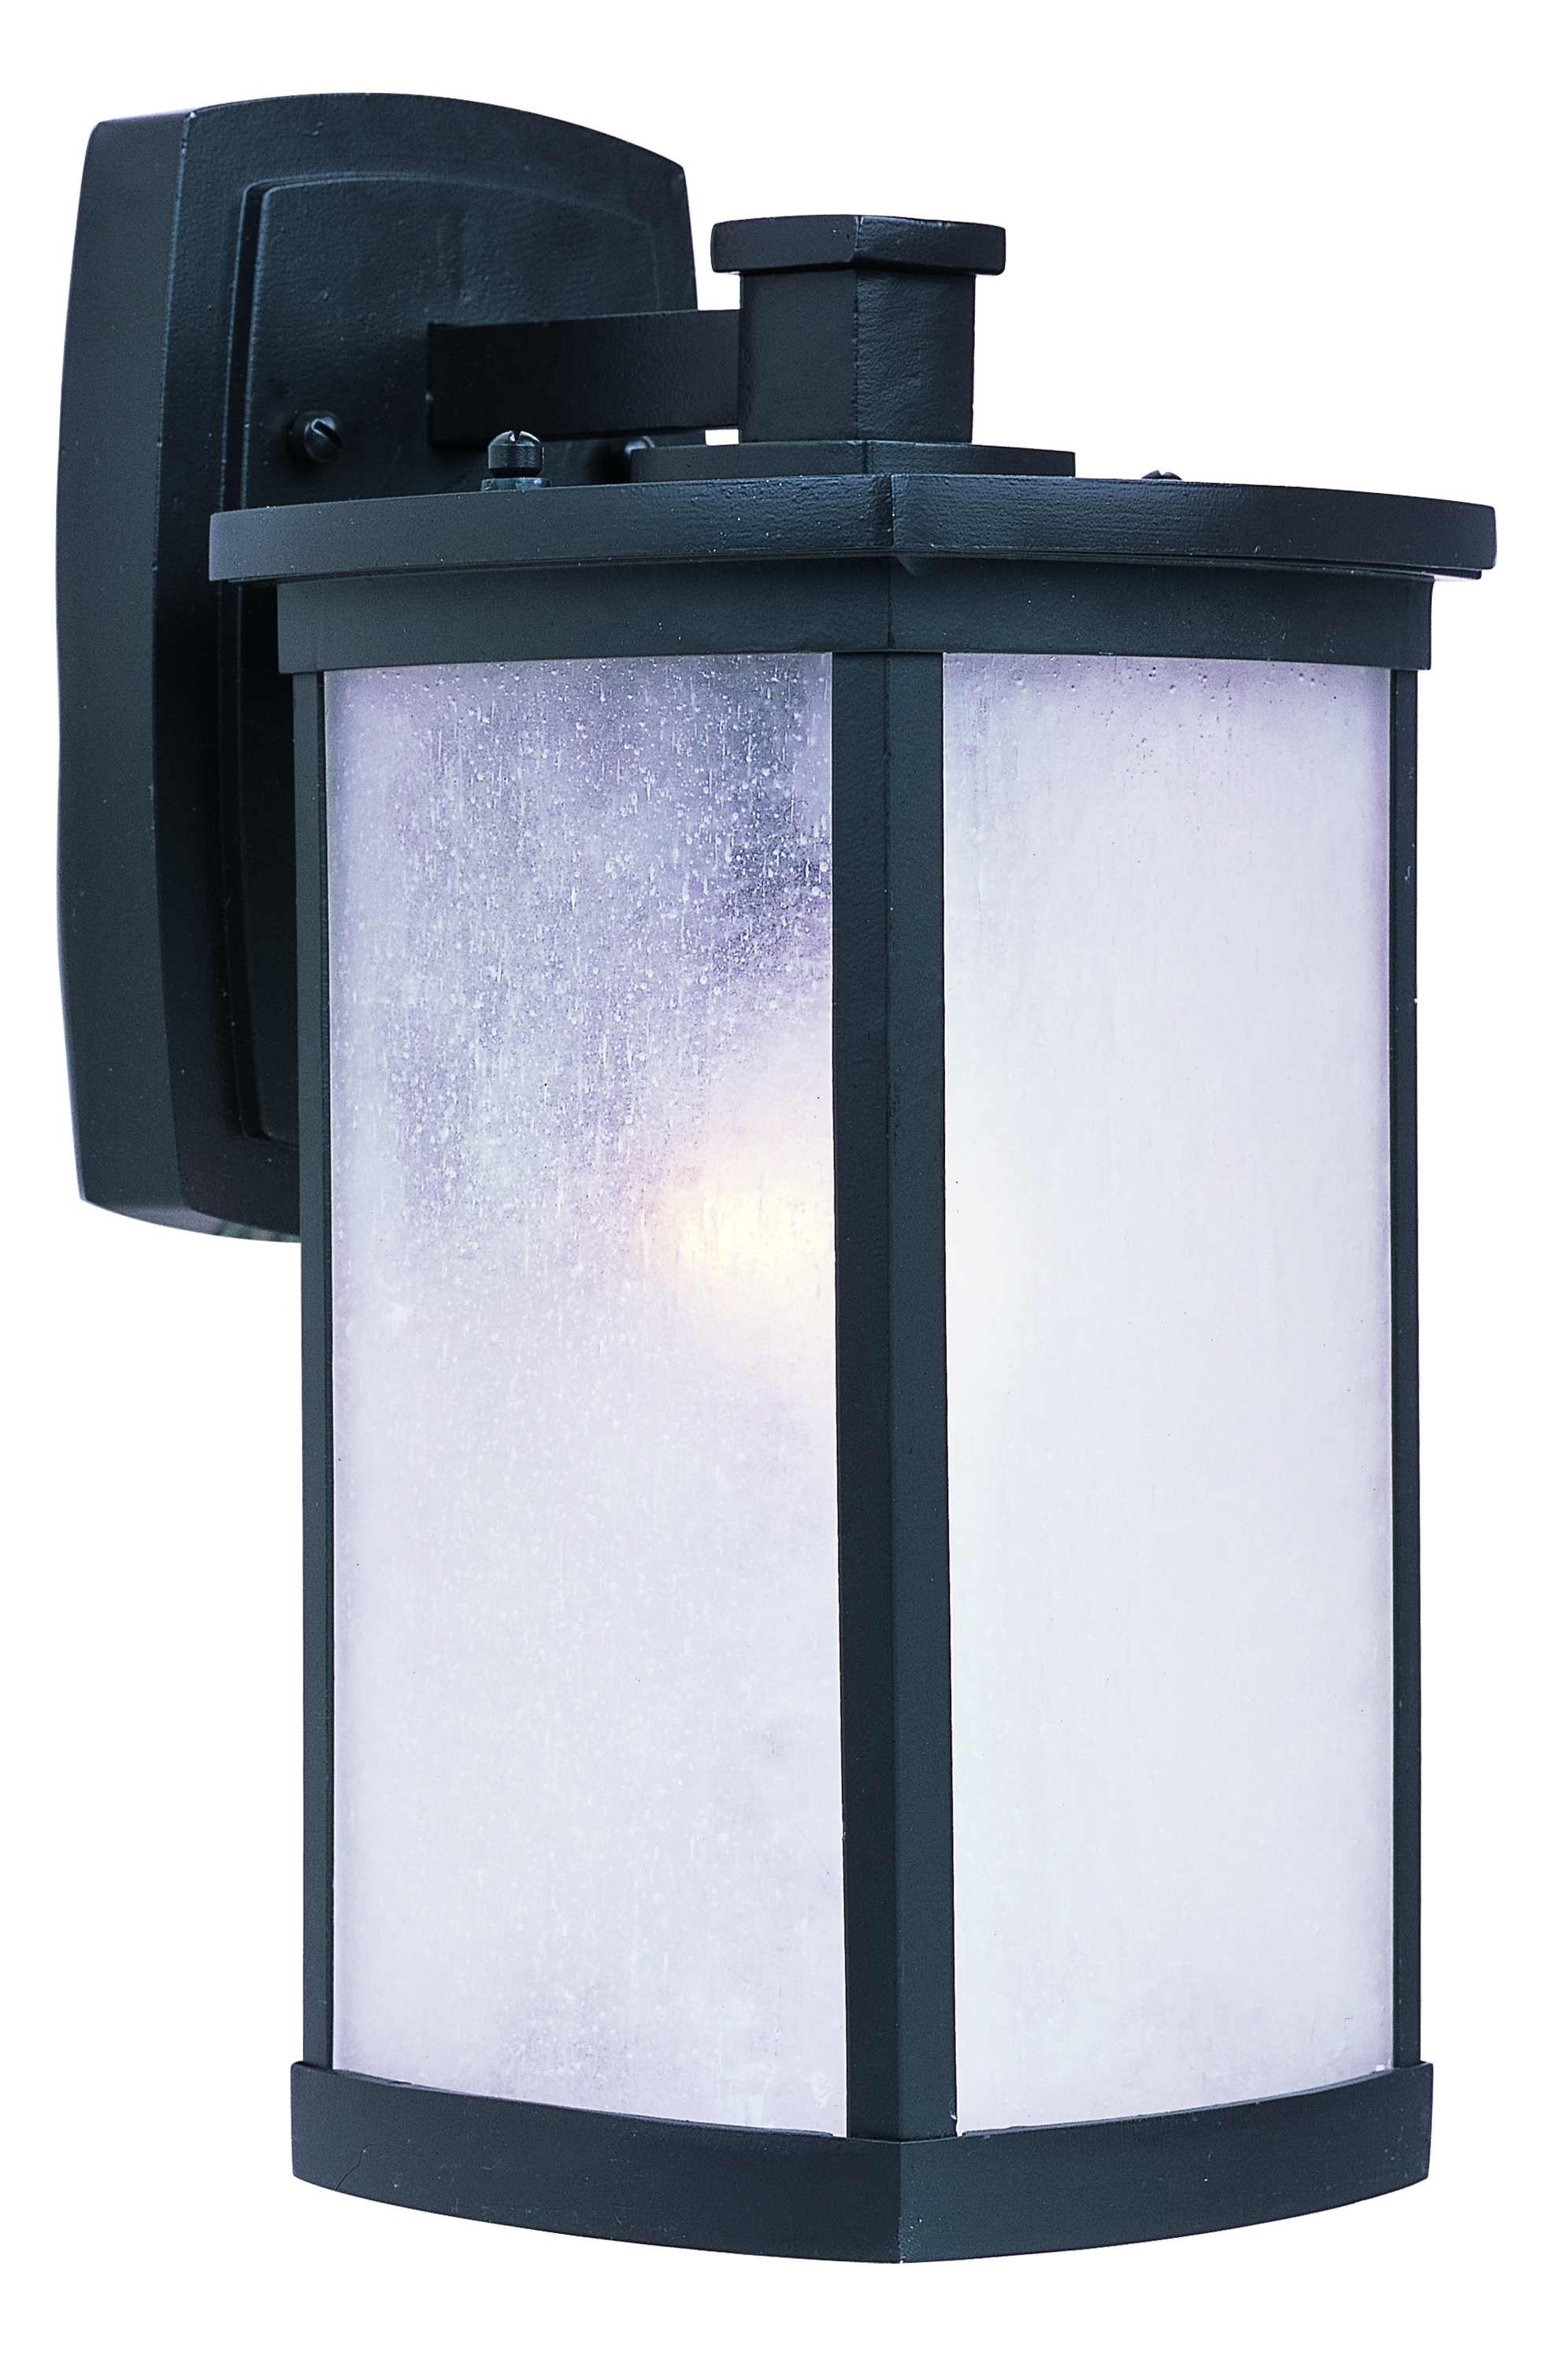 Newest Outdoor Wall Lighting At Ebay With Regard To Terrace 1 Light Medium Outdoor Wall – Outdoor Wall Mount – Maxim (View 18 of 20)